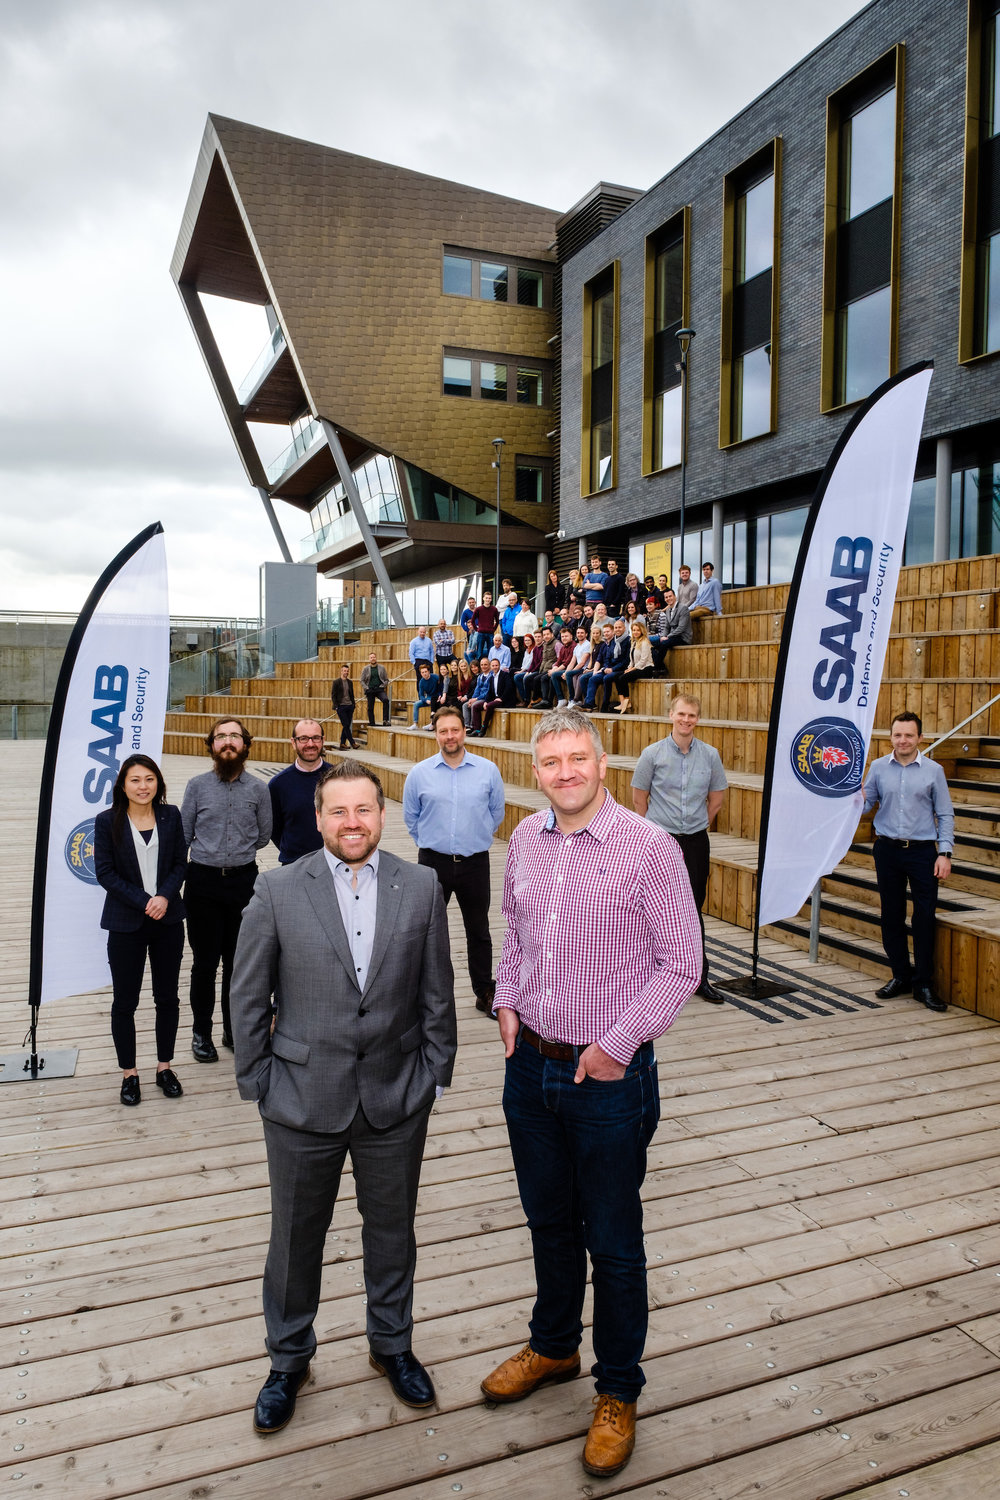 C4DI Managing Director John Connolly, right, welcomes Simon Read, UK Director of the Networks and Public Safety business unit of global technology company Saab, and his colleagues to the Hull tech hub. They are pictured in the Stage@TheDock amphitheatre within the @TheDock development of which C4DI is the centrepiece, with other members of the C4DI community.